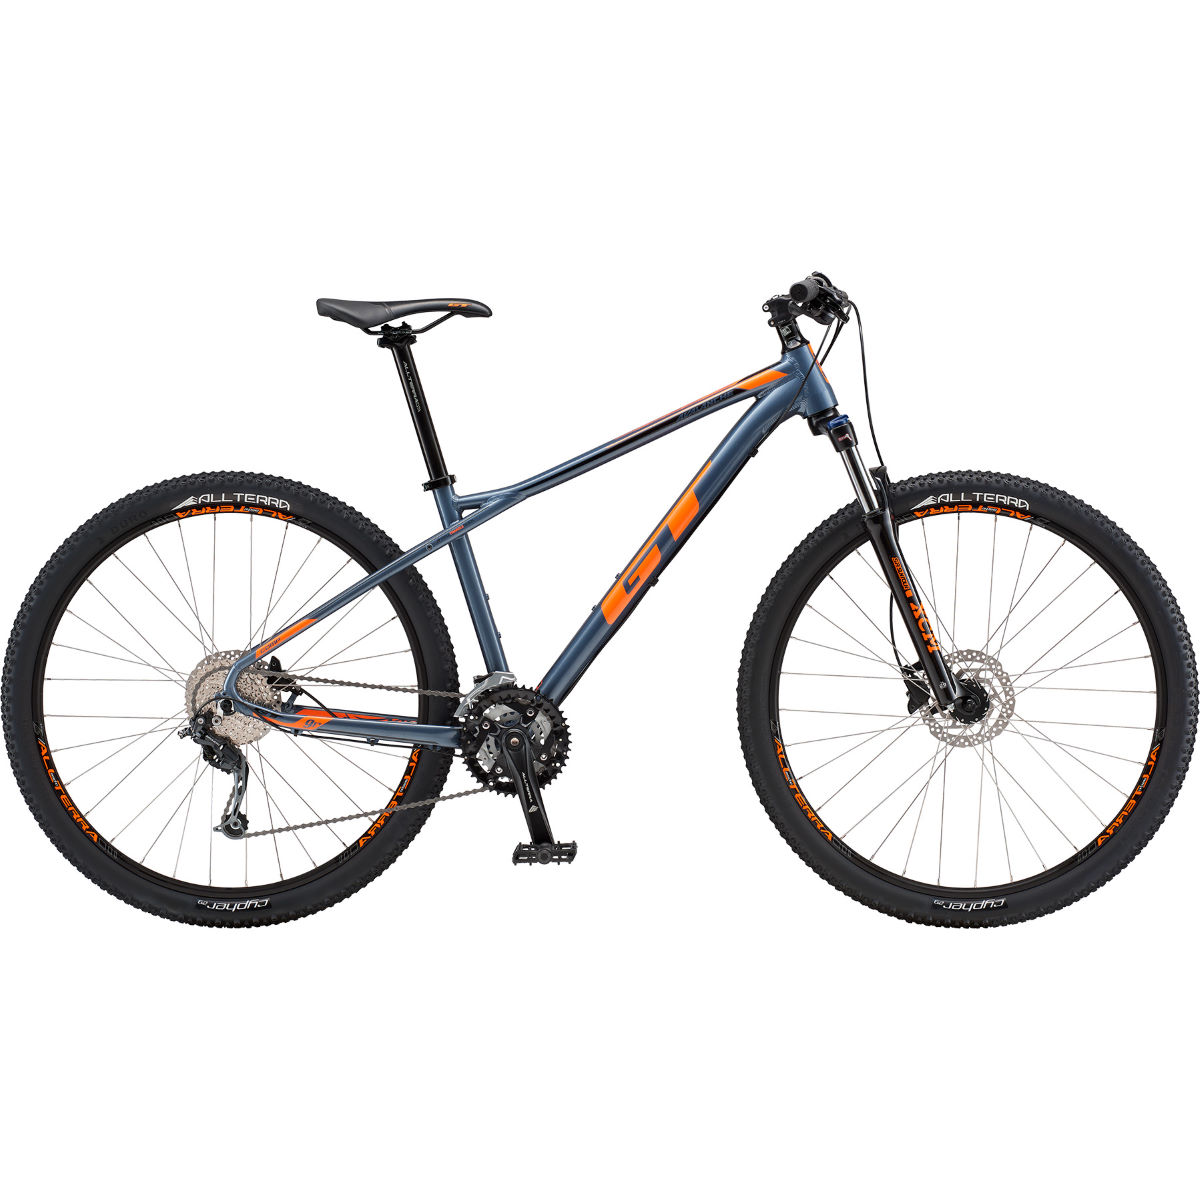 VTT semi-rigide GT Avalanche Comp 29 - Large Stock Bike Blue Steel